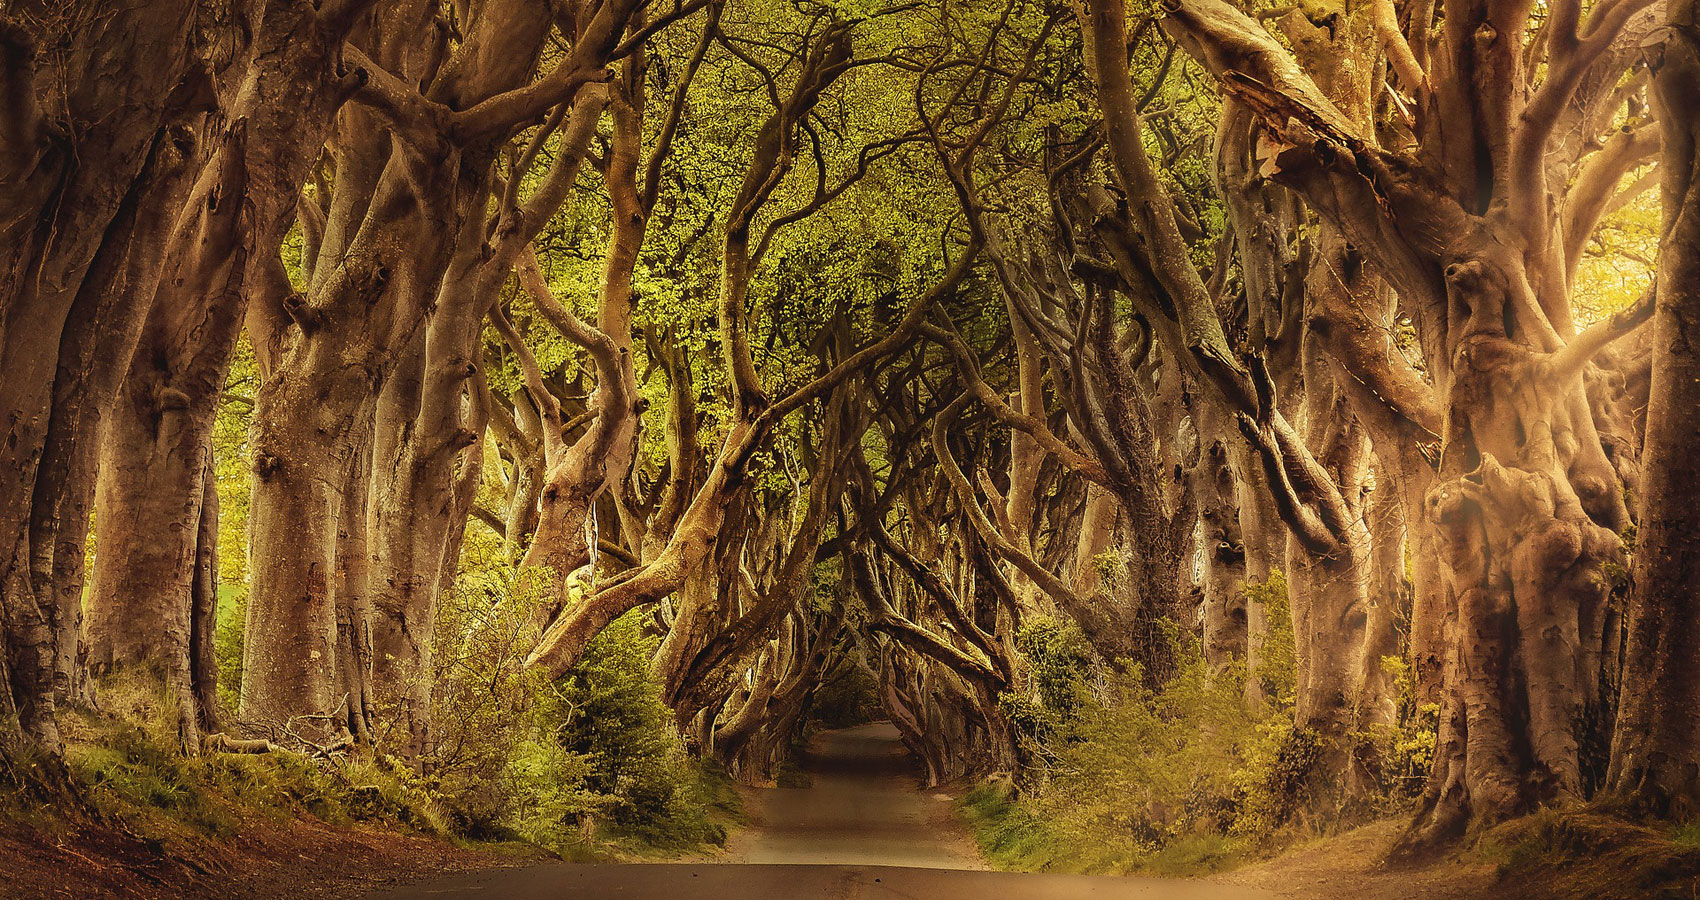 TREES, a poem written by Anne G, poet and writer, at Spillwords.com